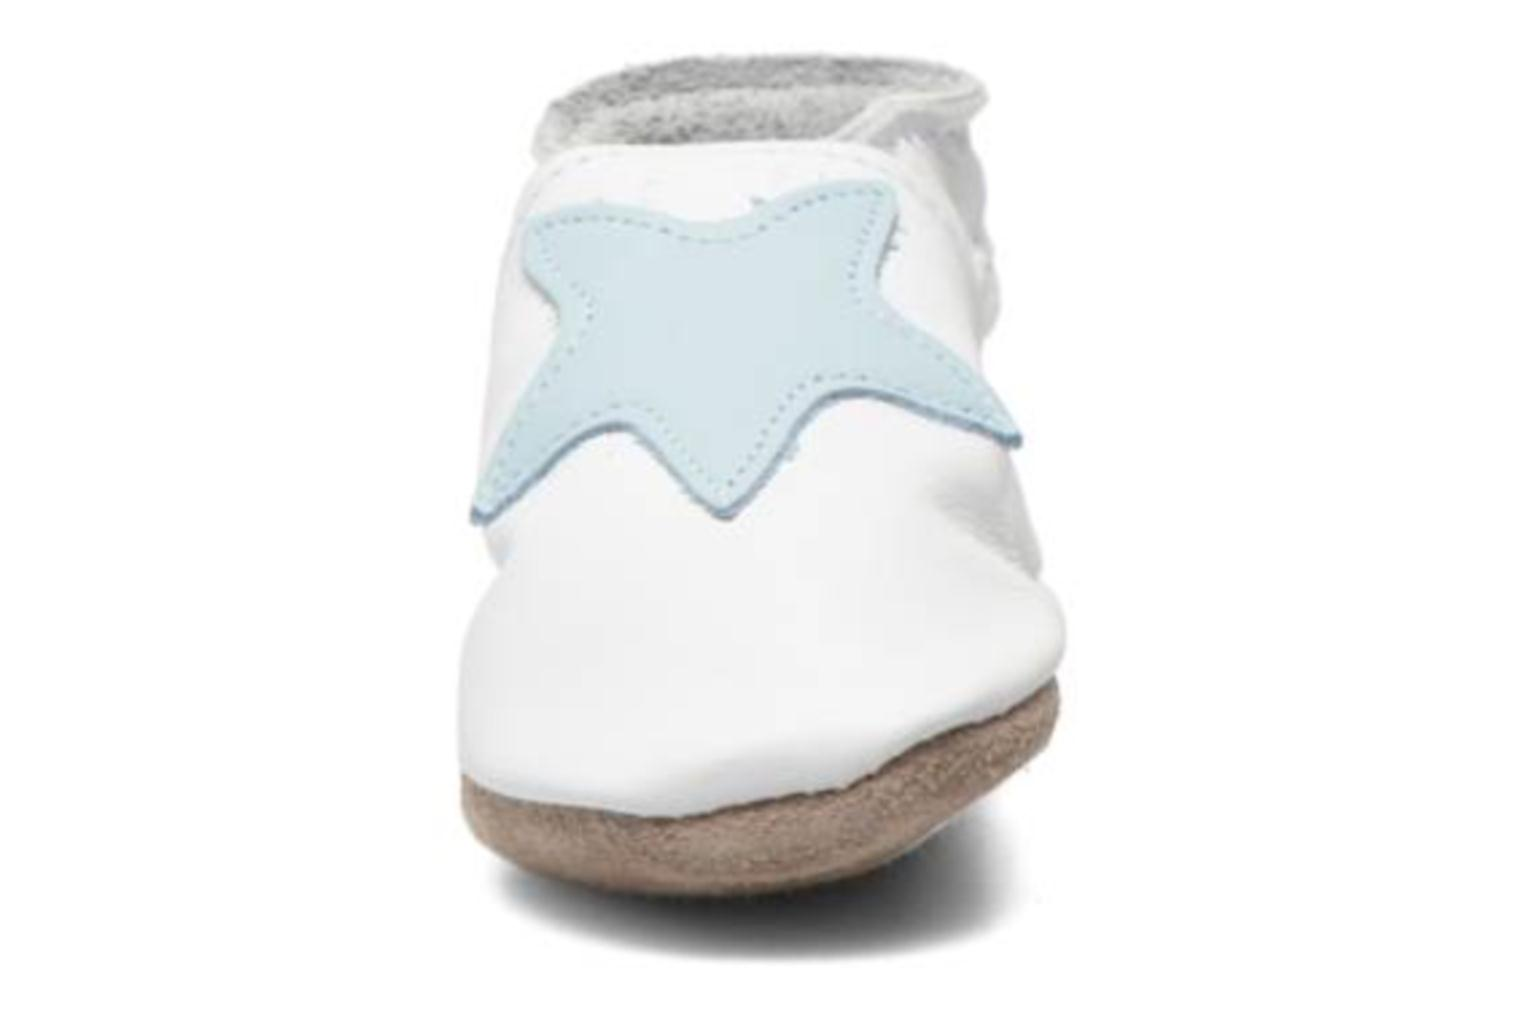 Chaussons Inch Blue Star Blanc vue portées chaussures